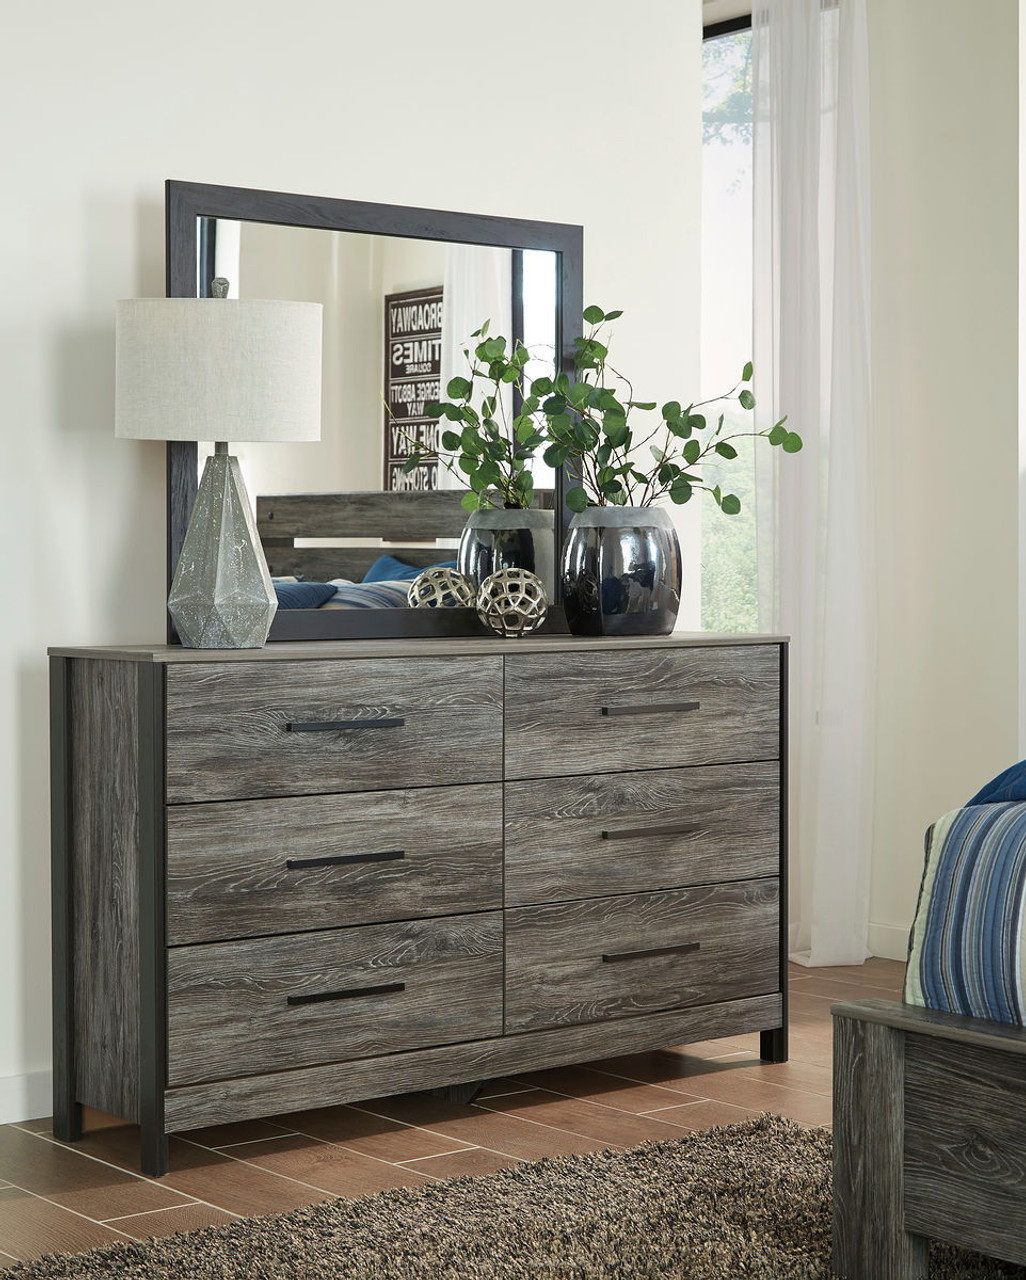 The Cazenfeld Black Gray 6 Pc Dresser Mirror Chest King Panel Headboard Bed 2 Nightstands Available At Direct Value Furniture Serving Roscoe Il